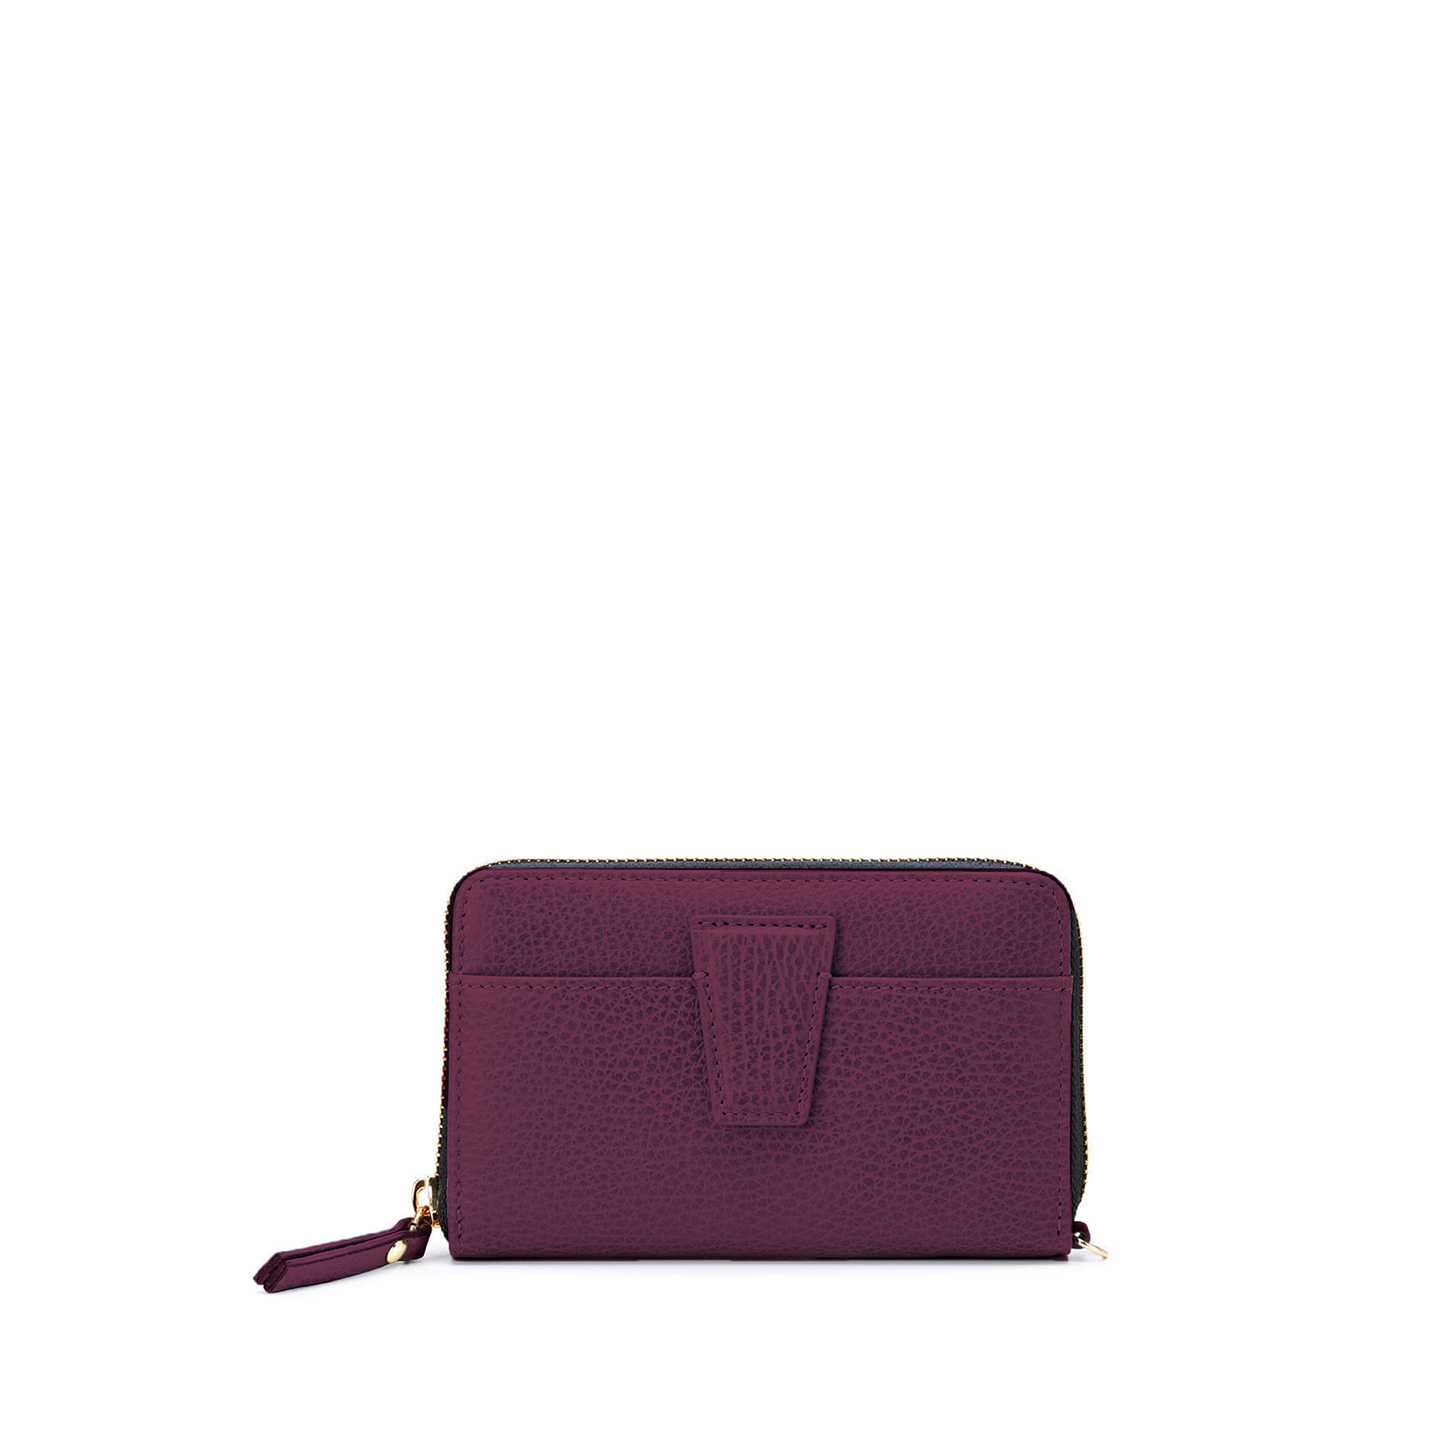 GIANNI CHIARINI: ELETTRA MEDIUM BORDEAUX WALLET